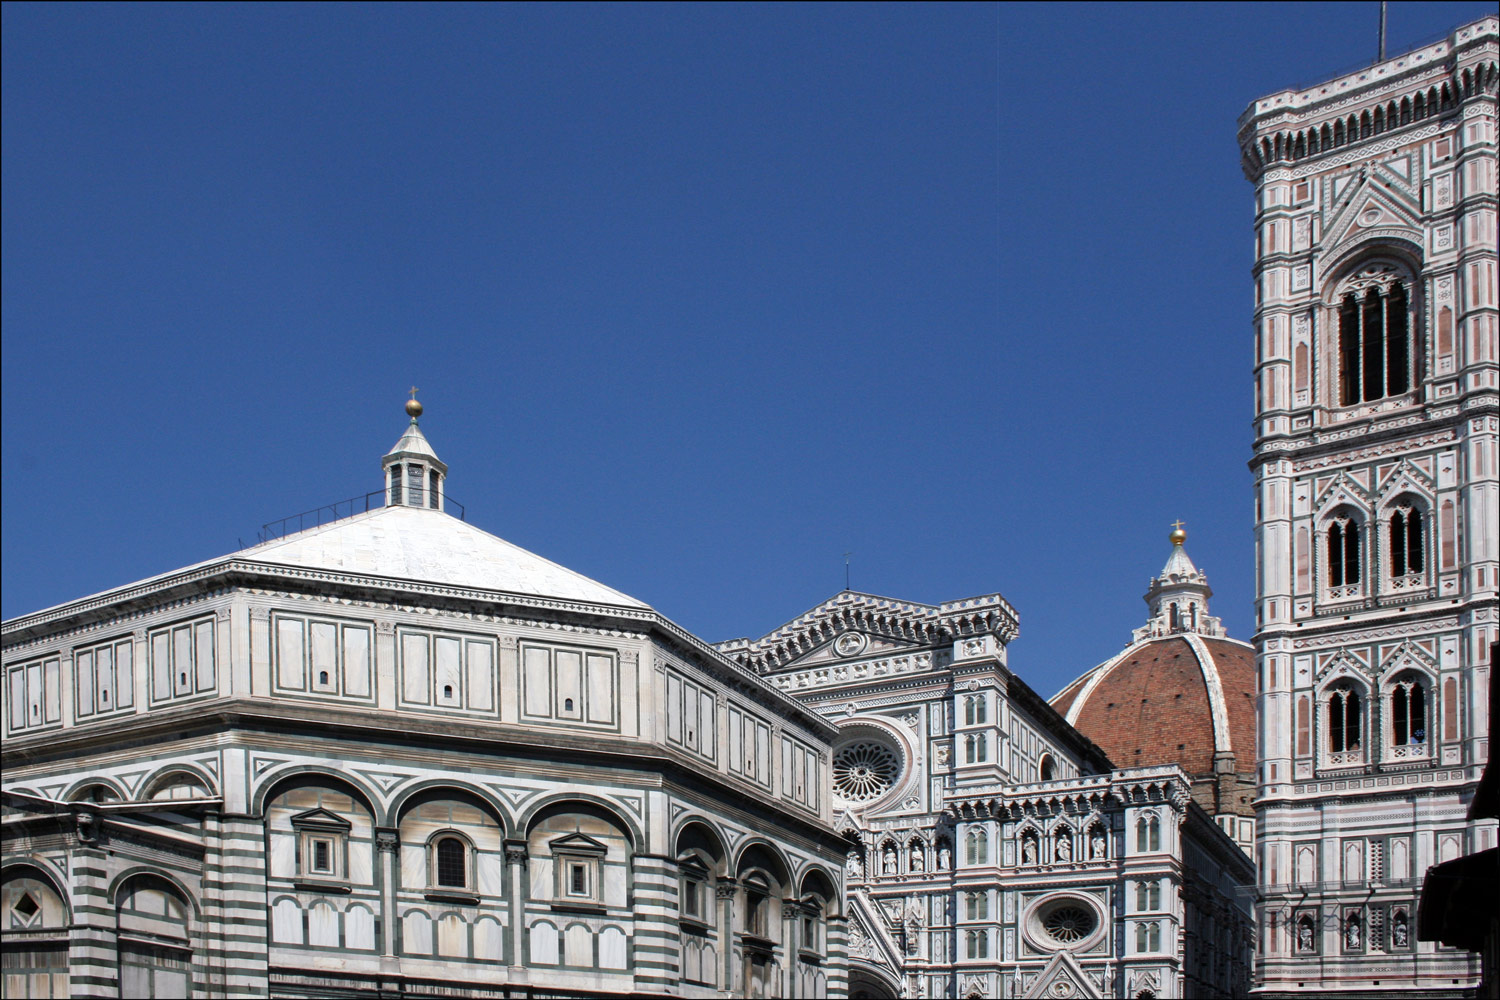 The Duomo, the Baptistry, and the Campanile